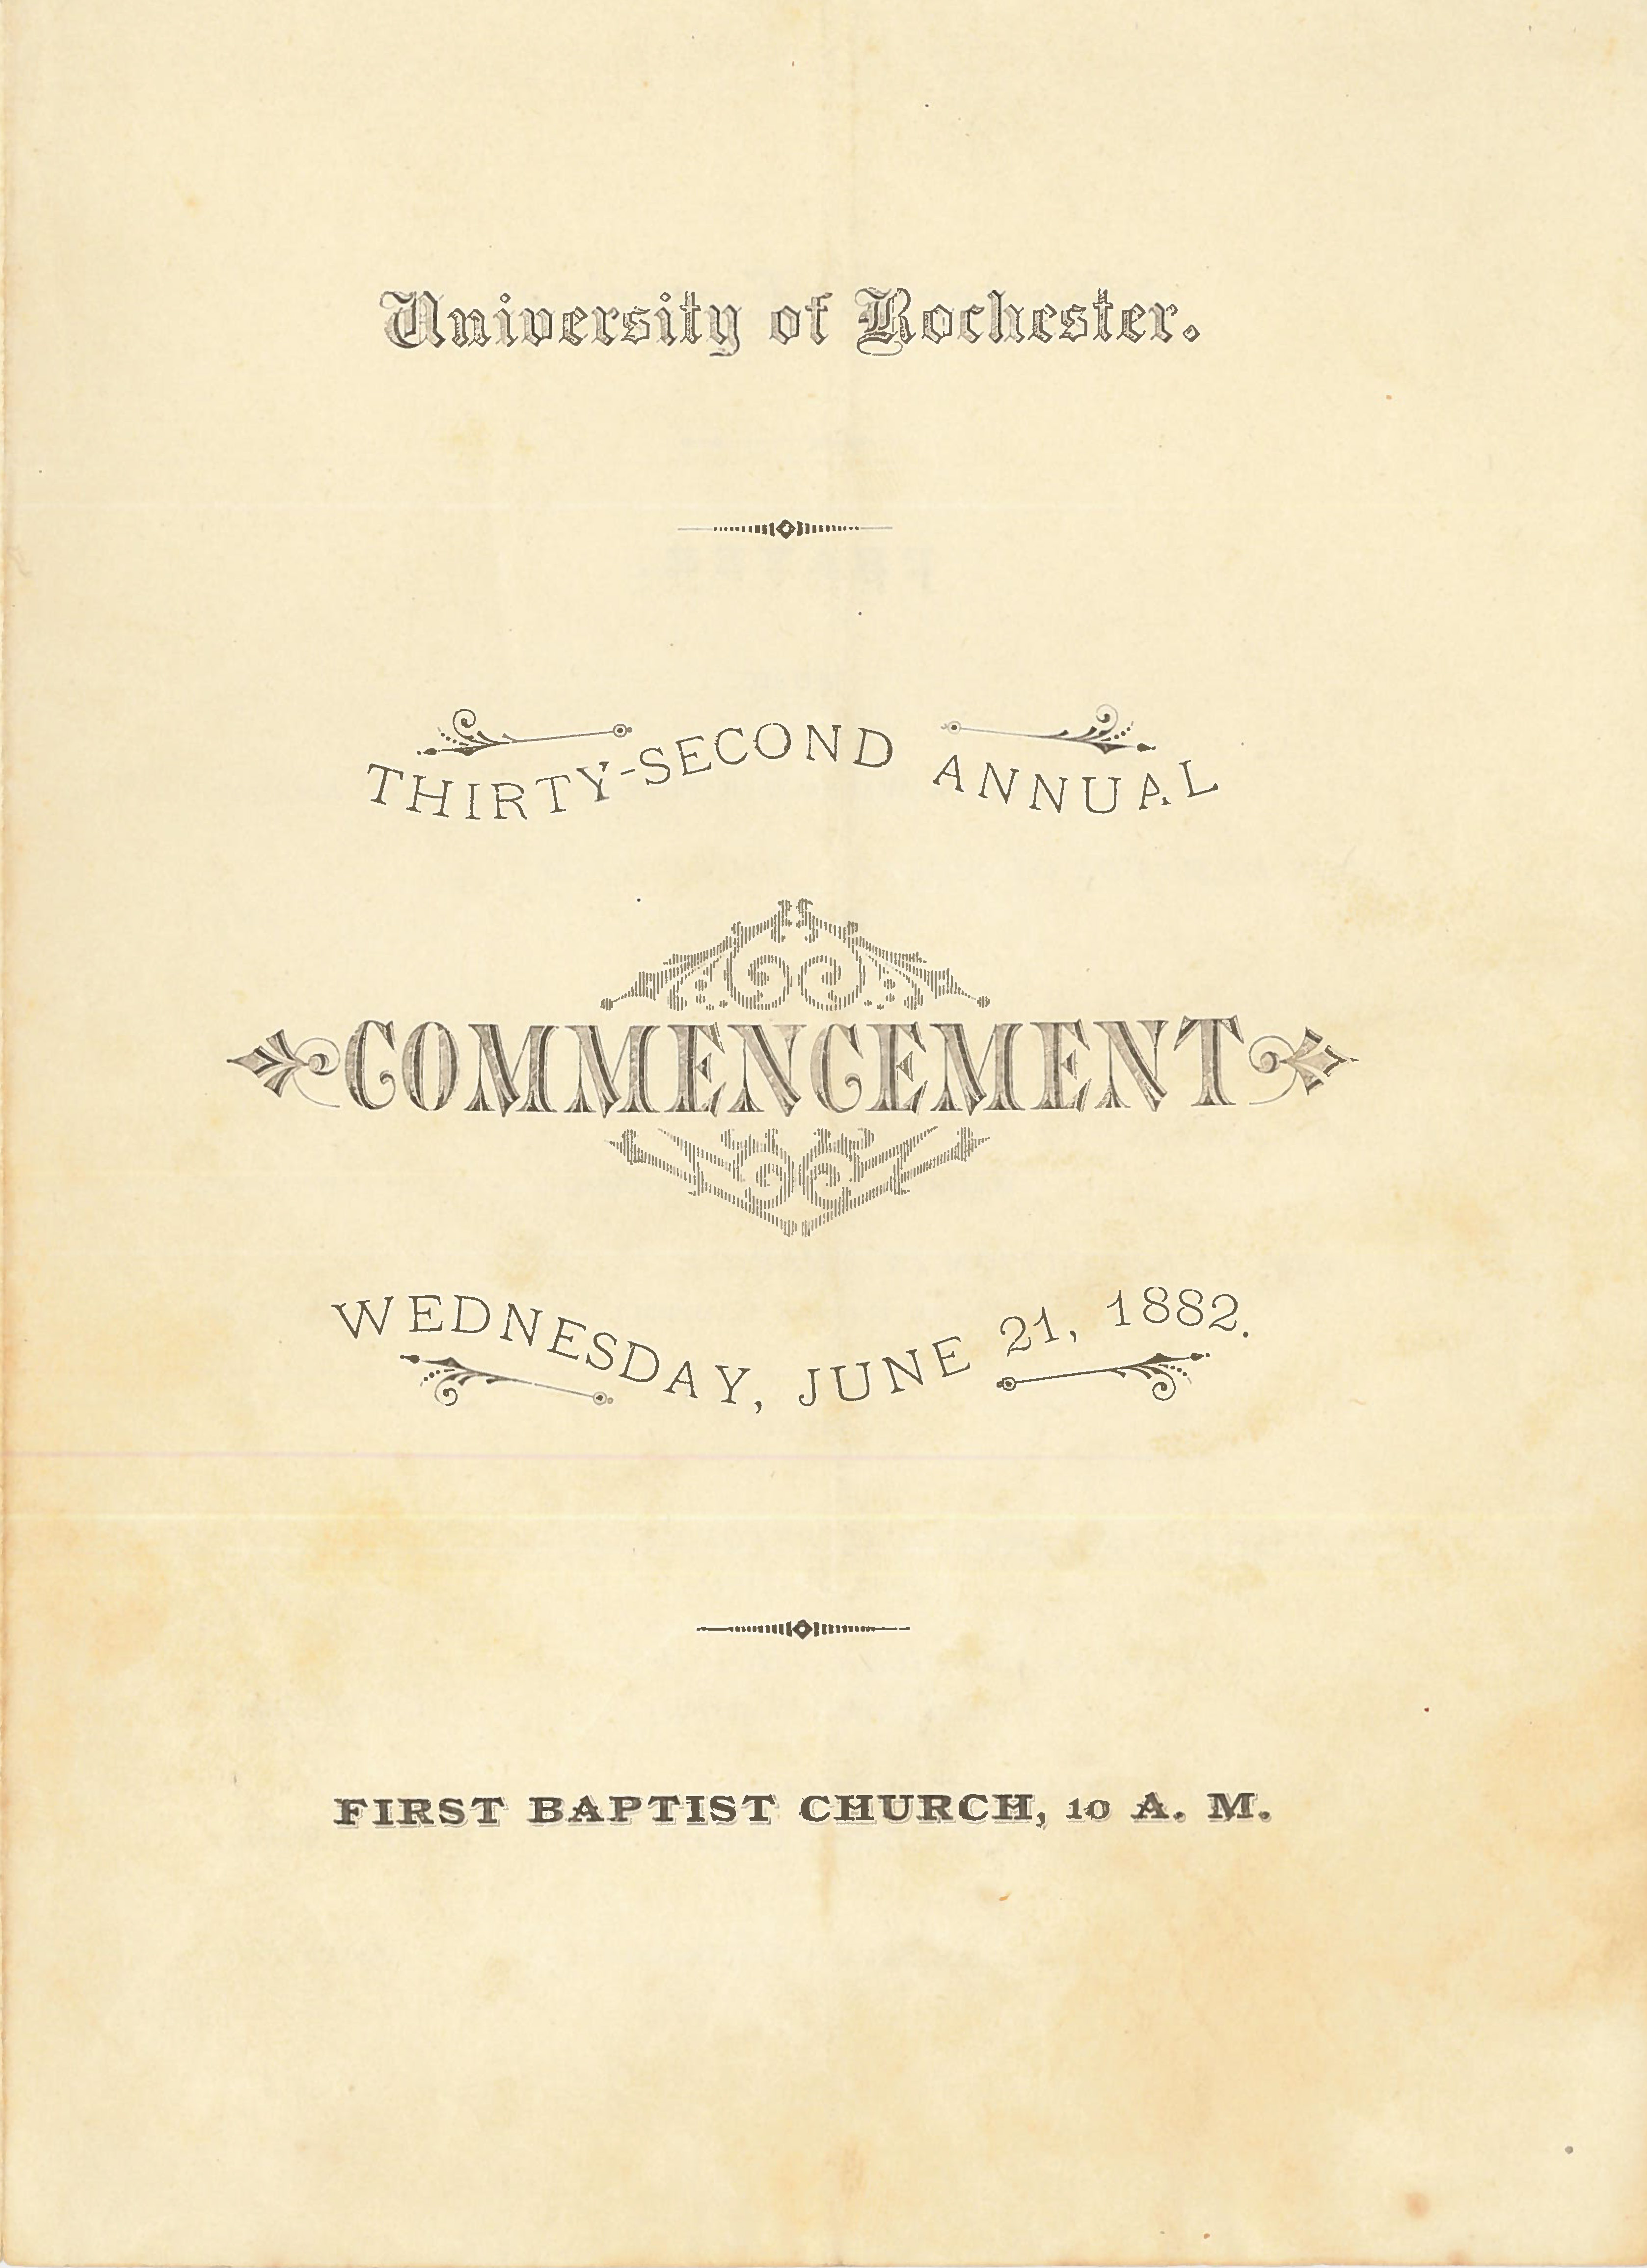 Commencement program, 1882